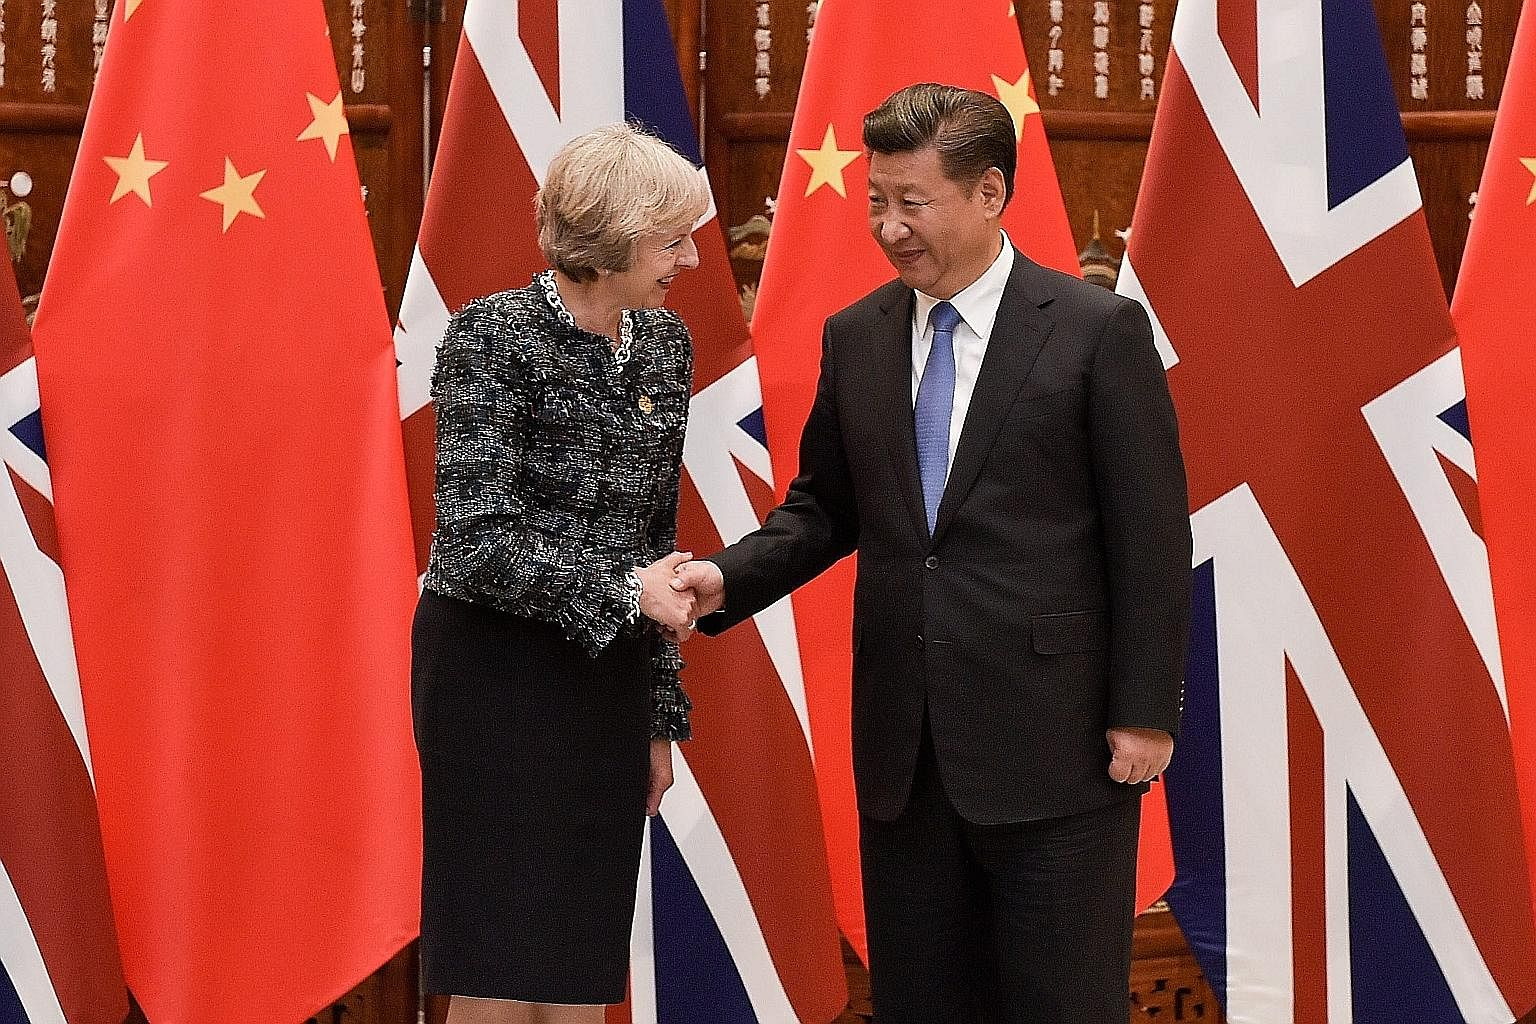 The Hinkley project was brought up when British Prime Minister Theresa May and Chinese President Xi Jinping met on the sidelines of the Group of 20 Summit in Hangzhou earlier this month.